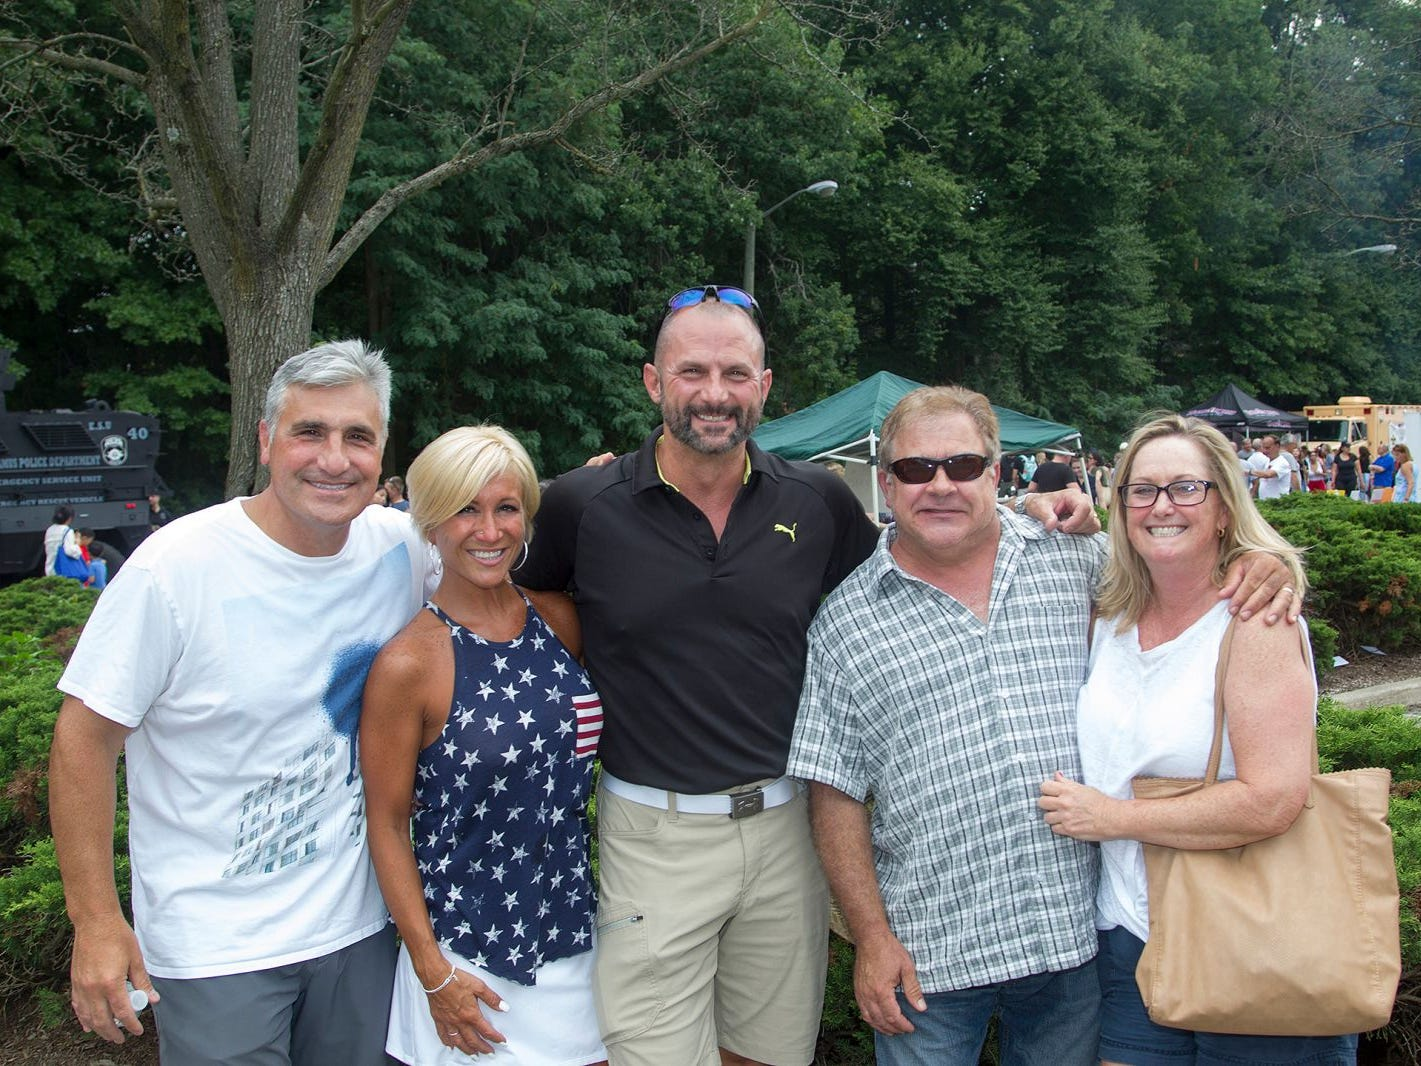 Danny and Gianna Amato, Rick Govel, Jeff Bass, Sharon Bass. Paramus National Night Out 2018 behind Paramus Library. 08/07/2018